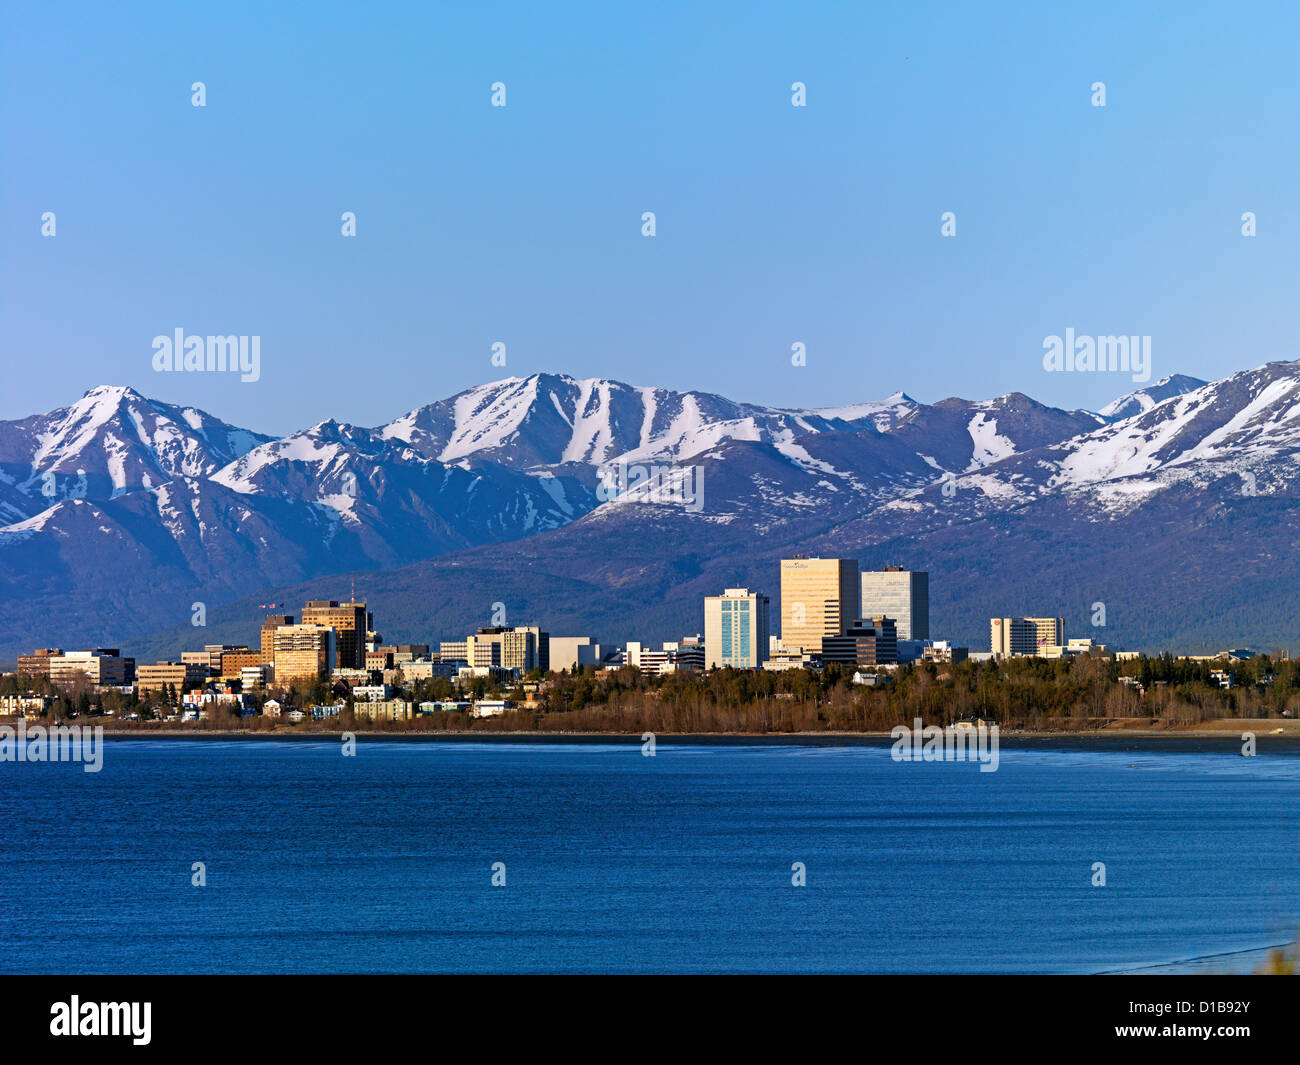 Anchorage Alaska, the largest city in the state - Stock Image